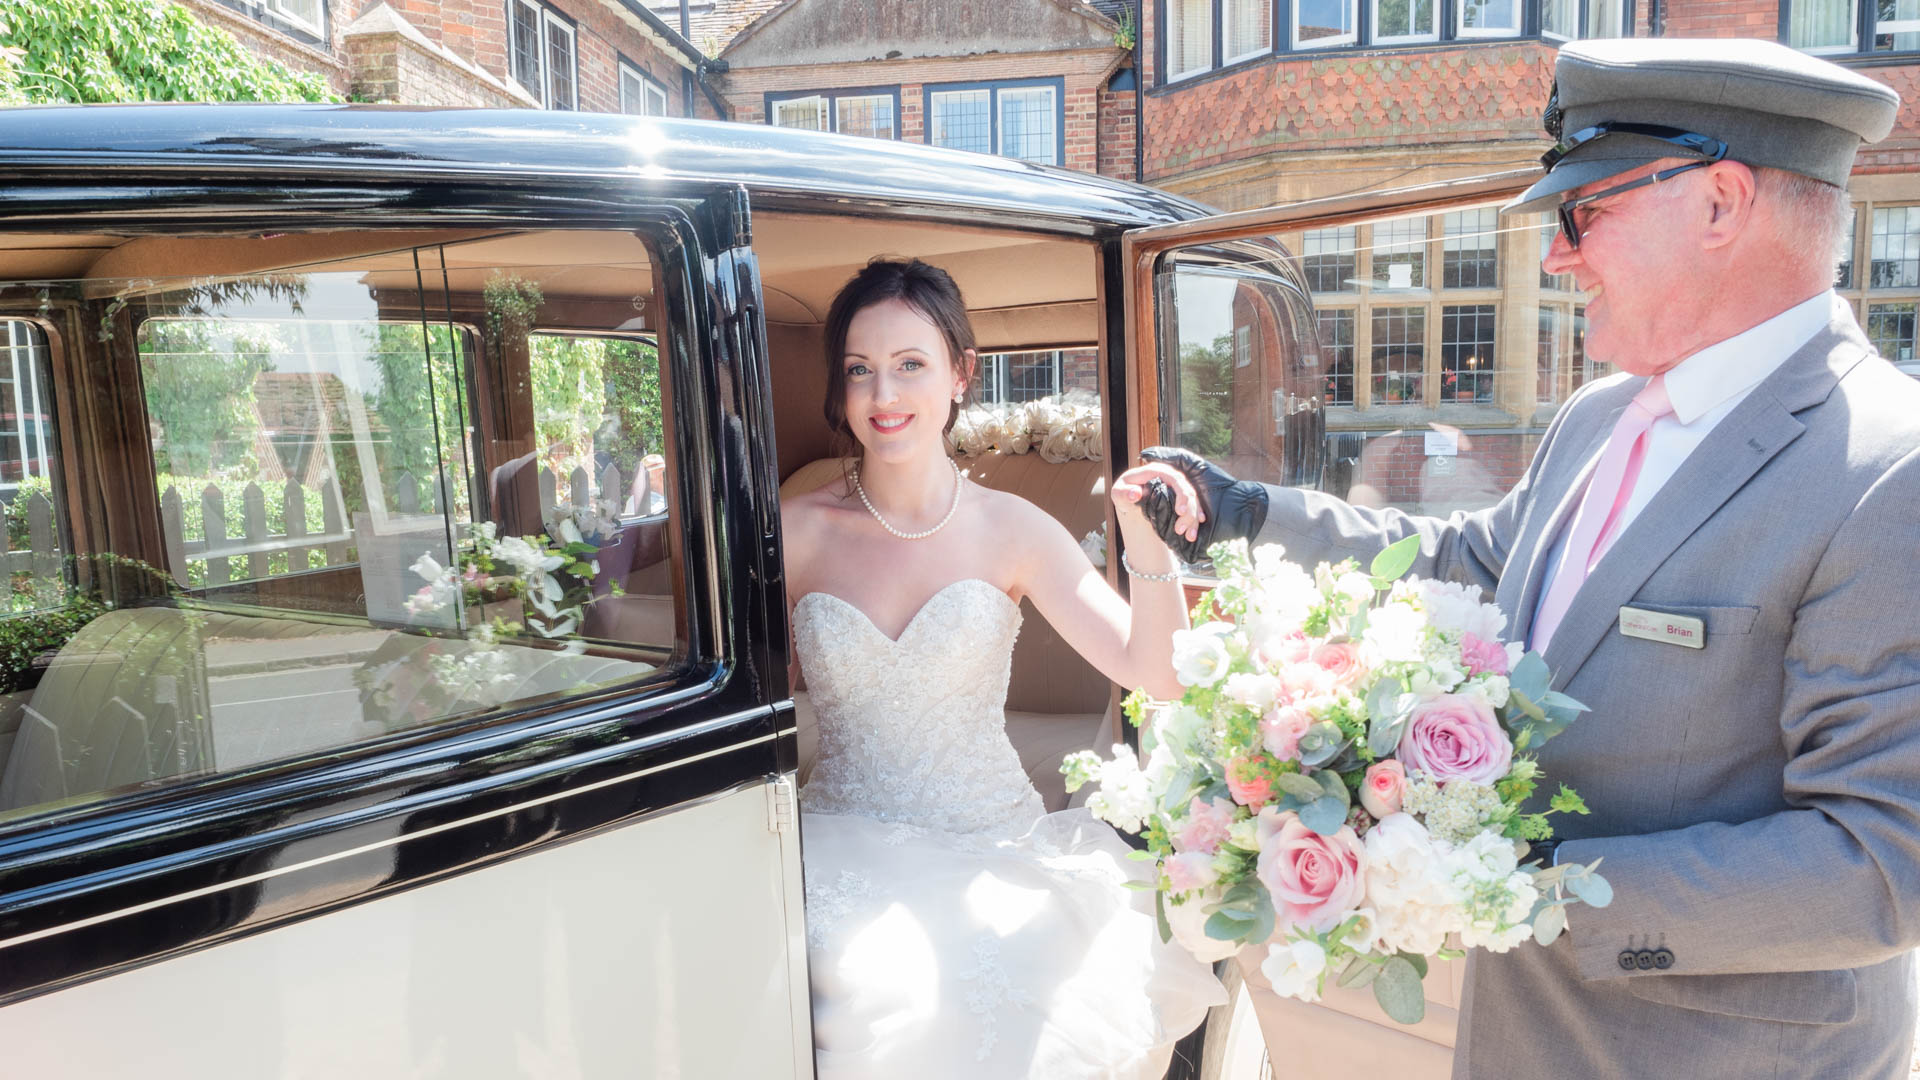 Chauffeur helps bride out of a vintage Rolls Royce at The Montagu Arms Hotel, Beaulieu